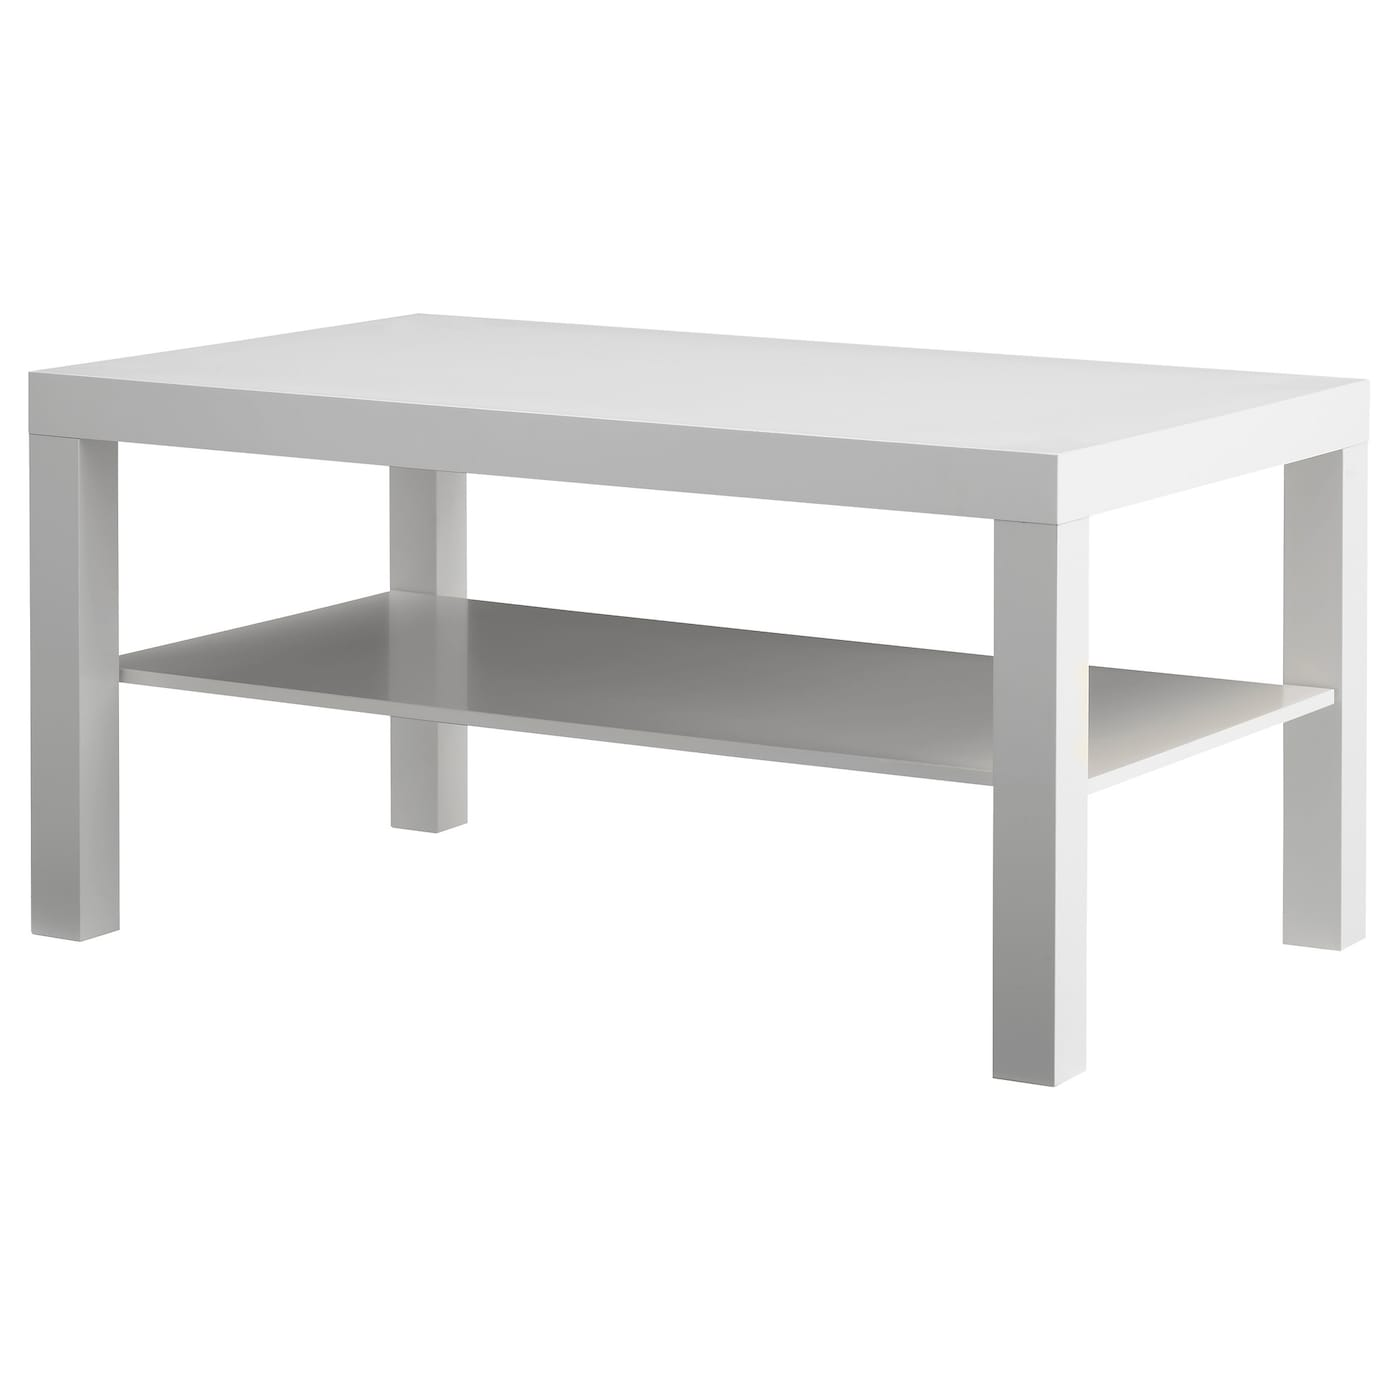 Lack coffee table white 90x55 cm ikea Ikea coffee tables and end tables